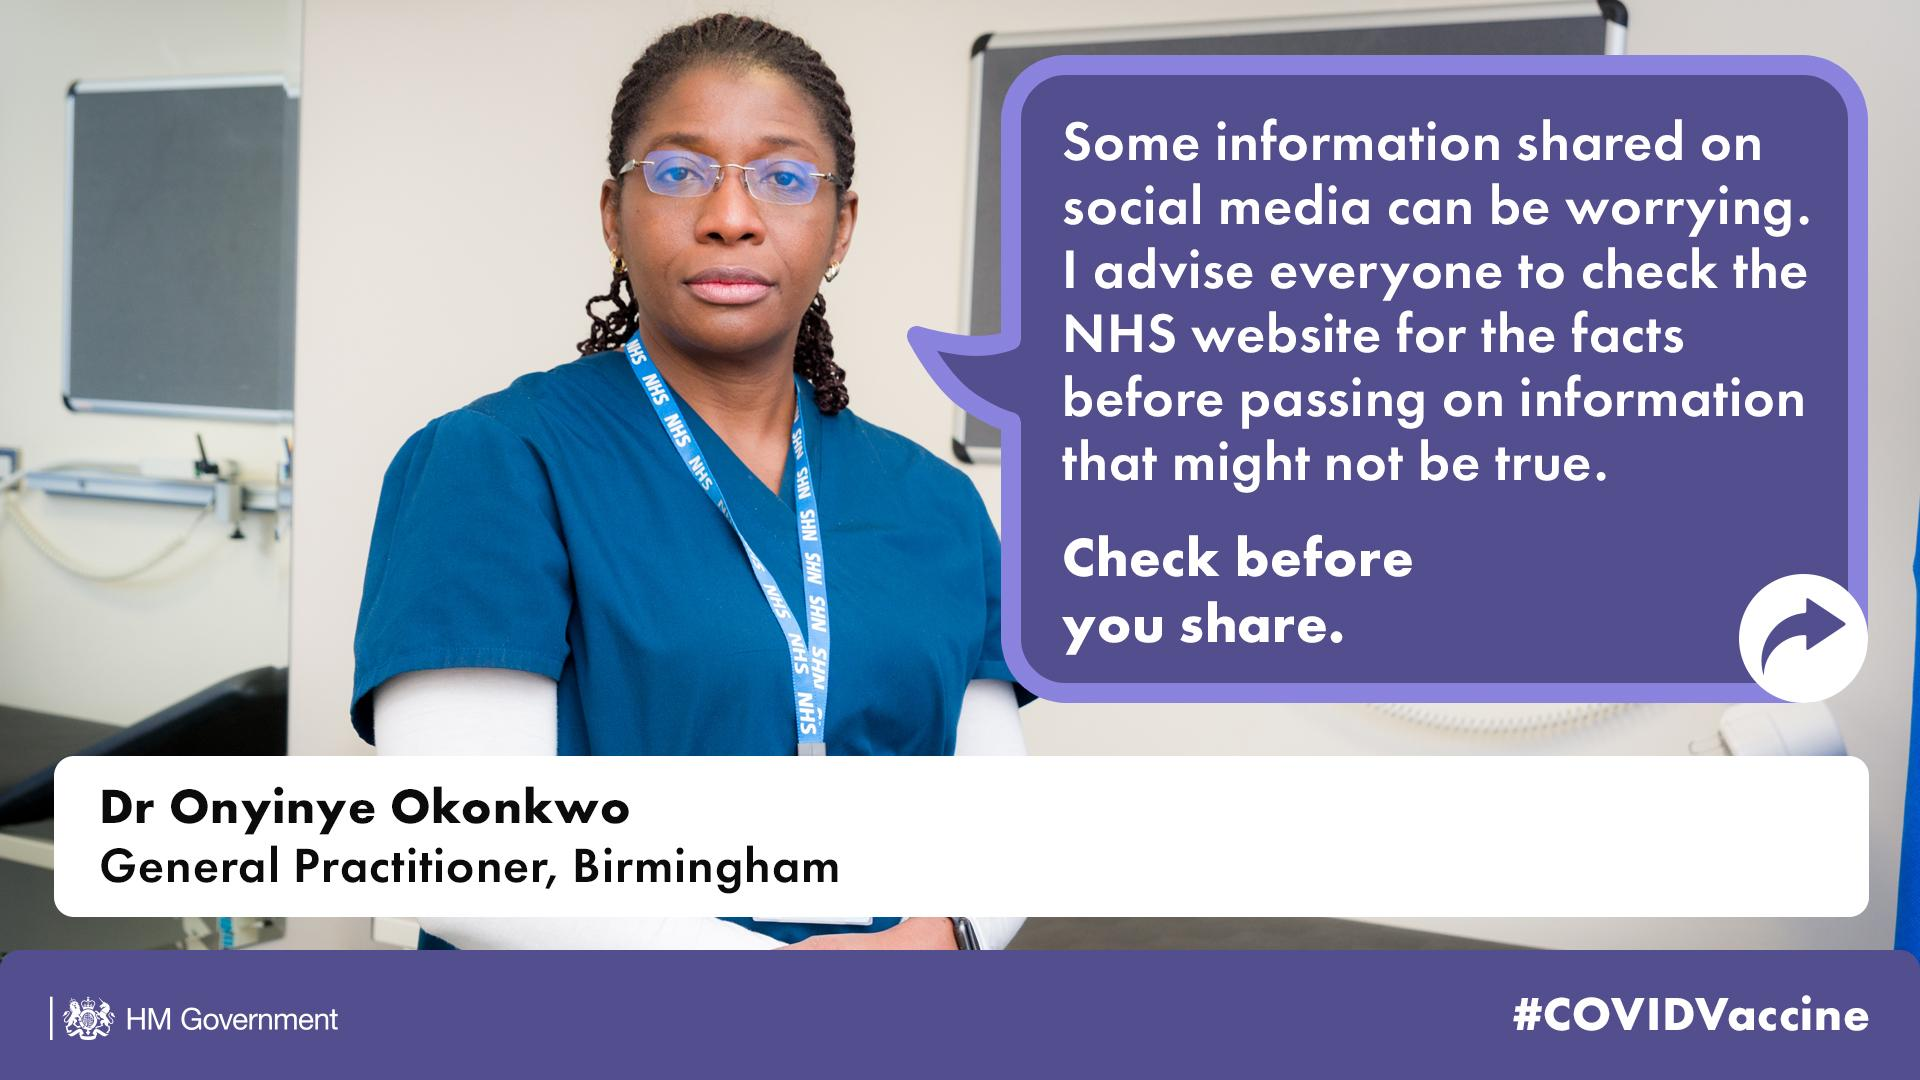 An image of a social media post featuring Birmingham GP Dr Onyinye Okonkwo, encouraging citizens to check information on vaccines before they share it